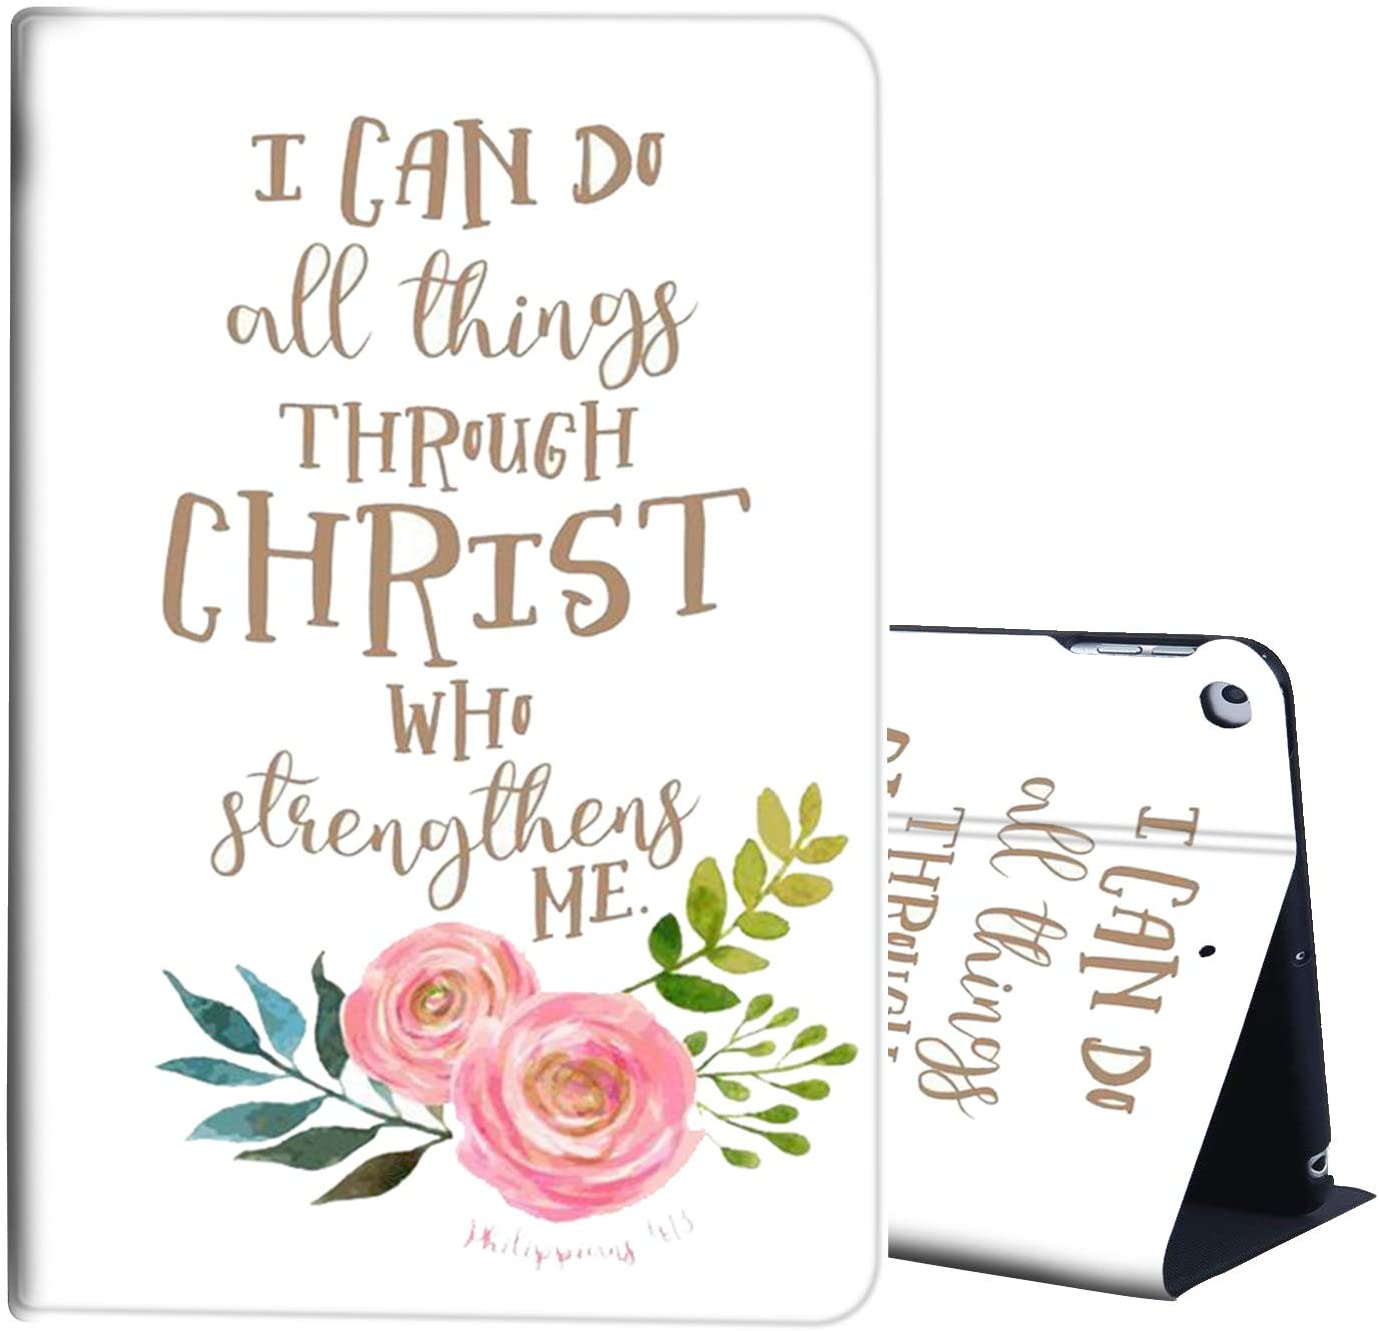 Case for iPad Mini 5 Case 2019 5th Generation iPad Mini,AIRWEE Slim Stand Protective Case Auto Sleep/Wake and Viewing/Typing Stand for 2019 Mini iPad 5 7.9 Inch,Quote Philippians 4:13